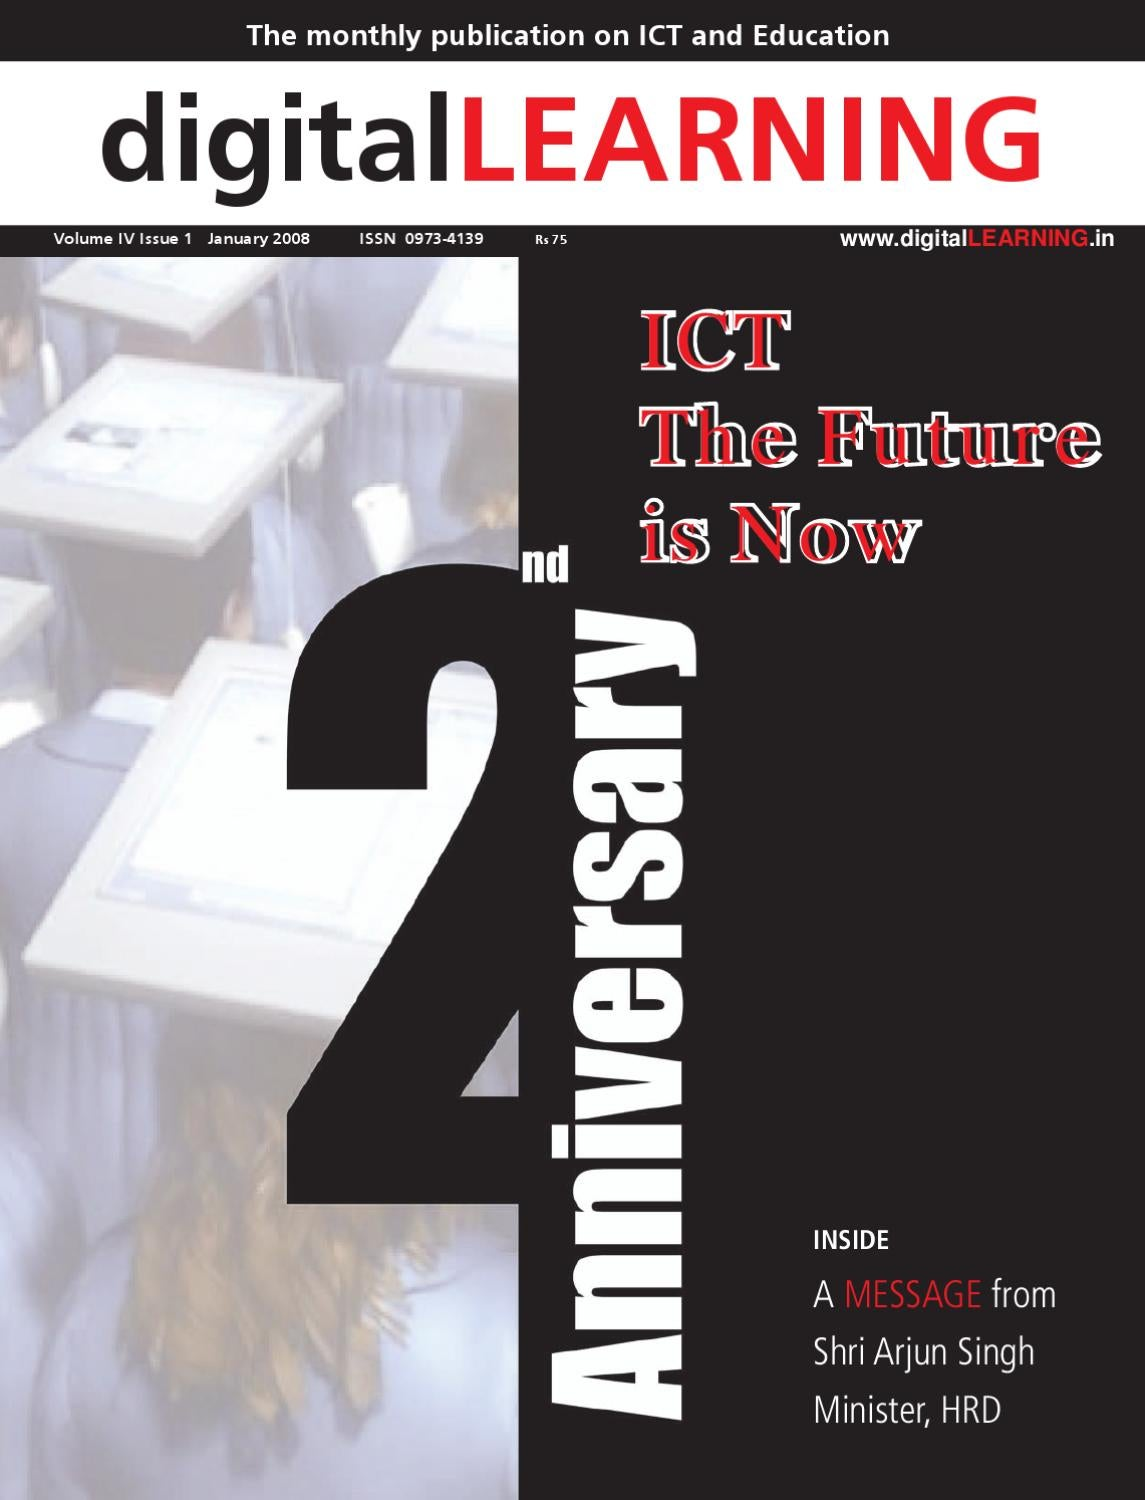 ICT The Future is Now : January 2008 Anniversary Issue by